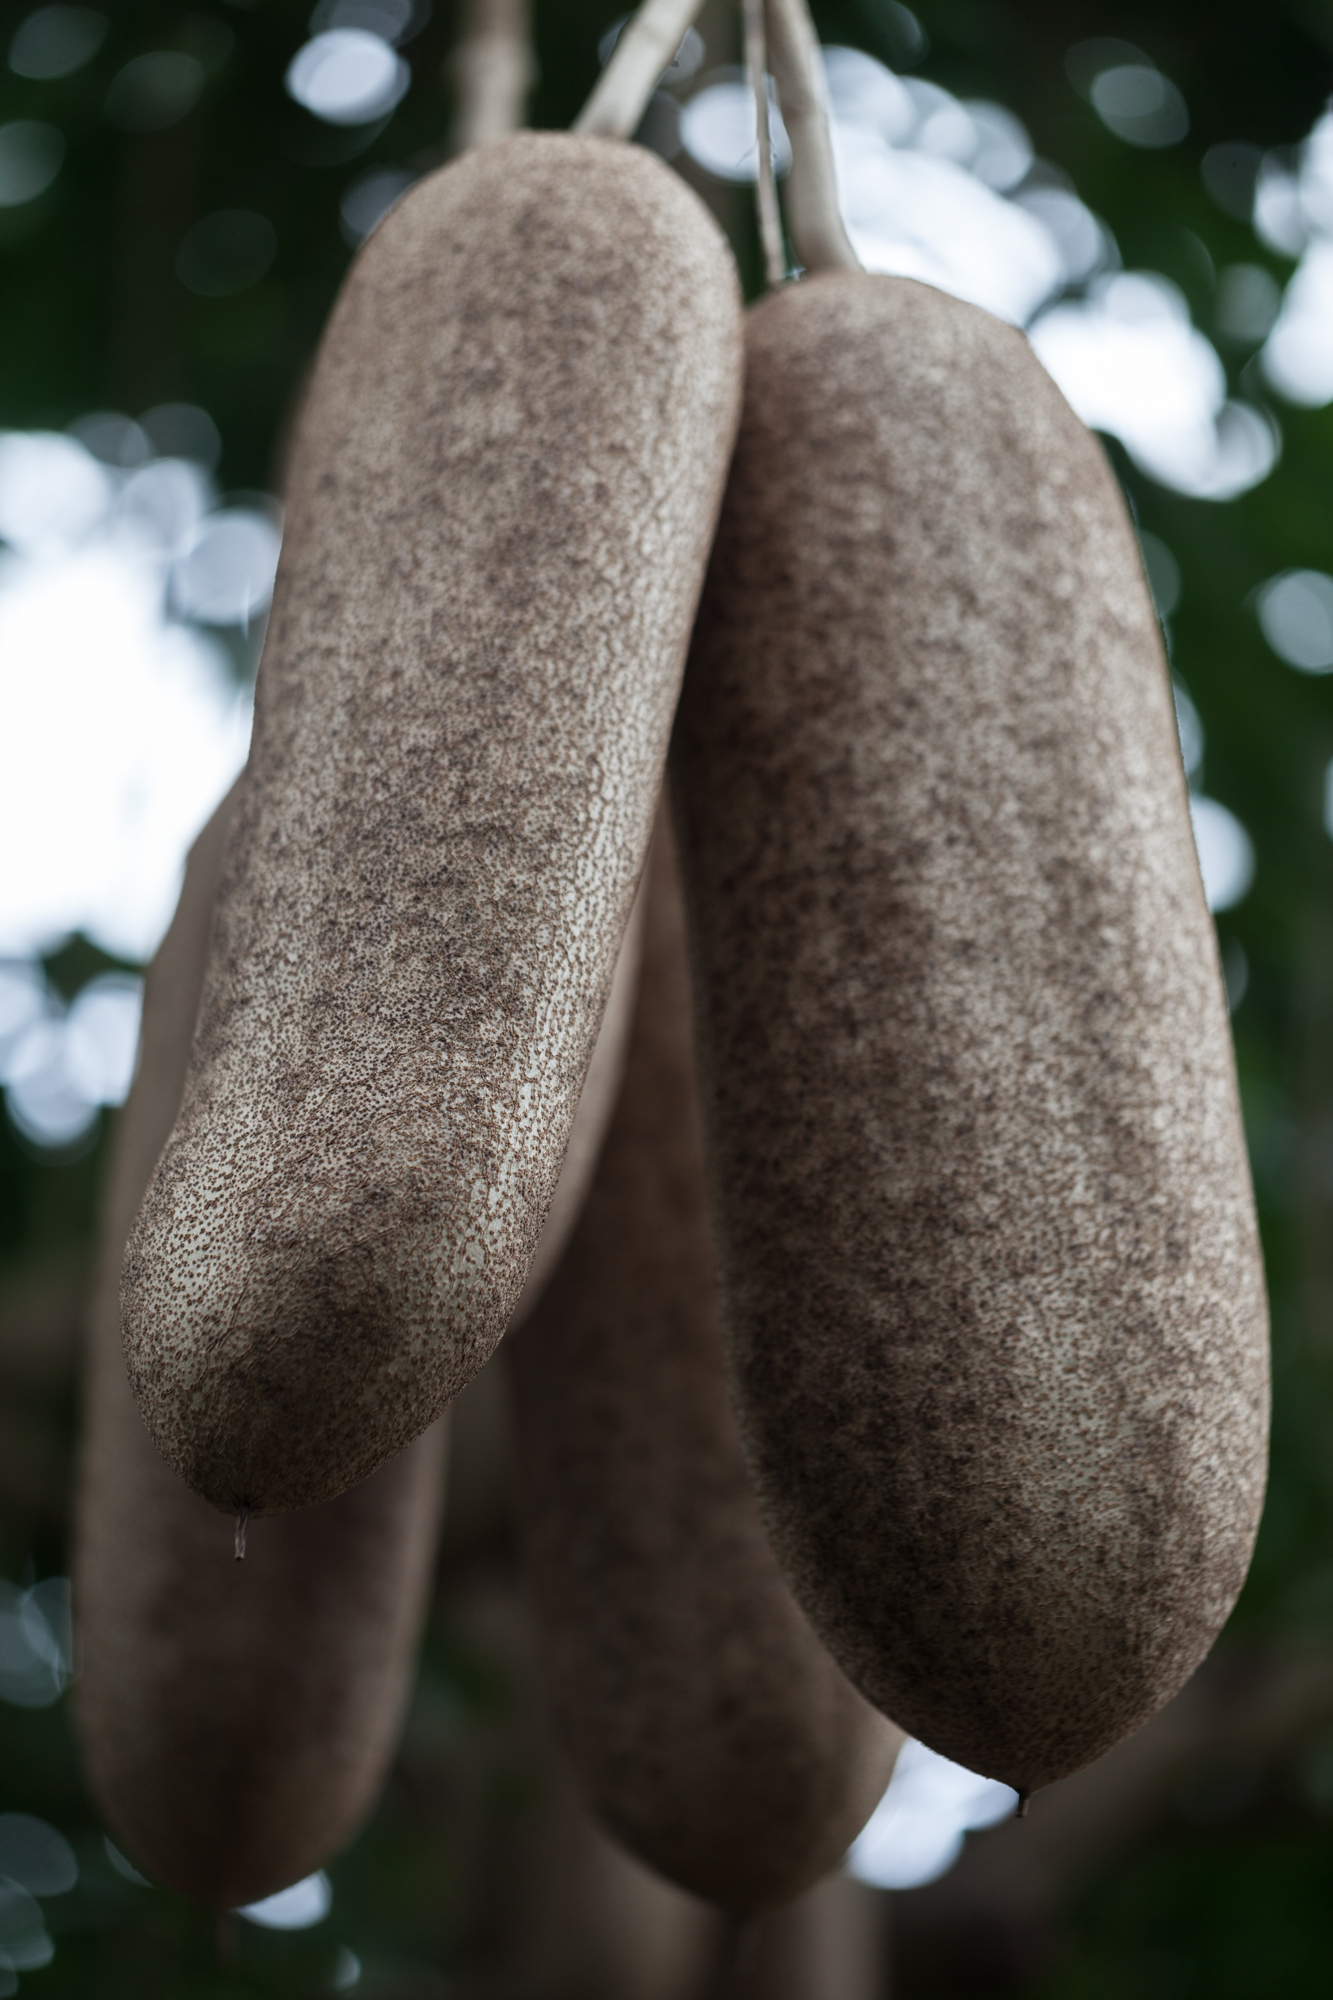 """I was surprised to see a  Kigalia africana, which is aptly named a """"Sausage tree"""". I had only seen these growing native in Mozambique, where I harvested them."""